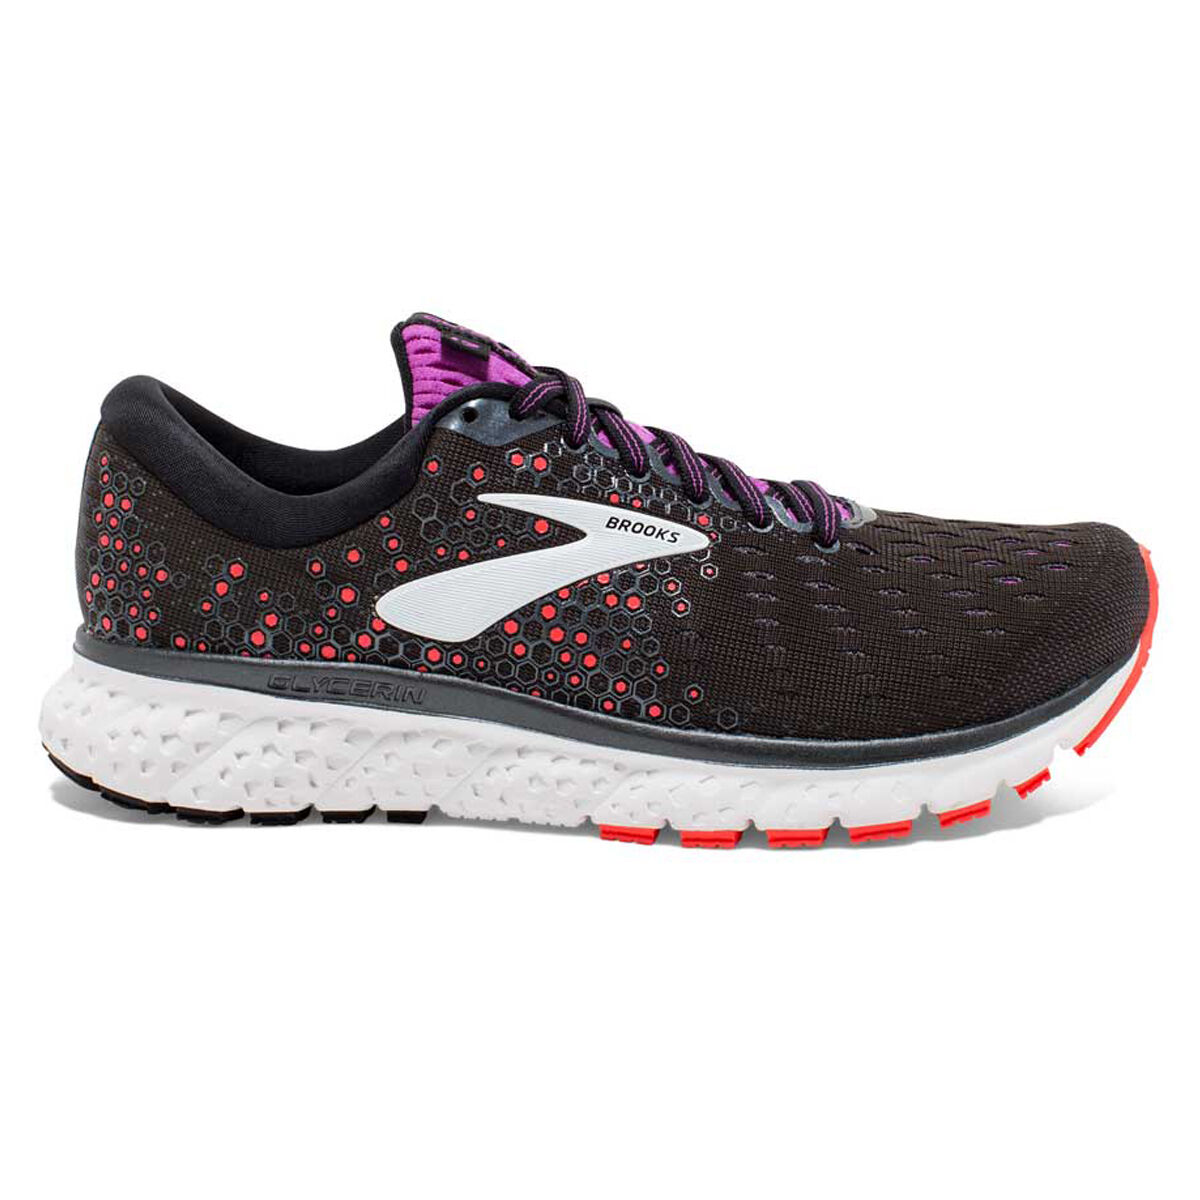 Brooks Glycerin 17 Womens Running Shoes